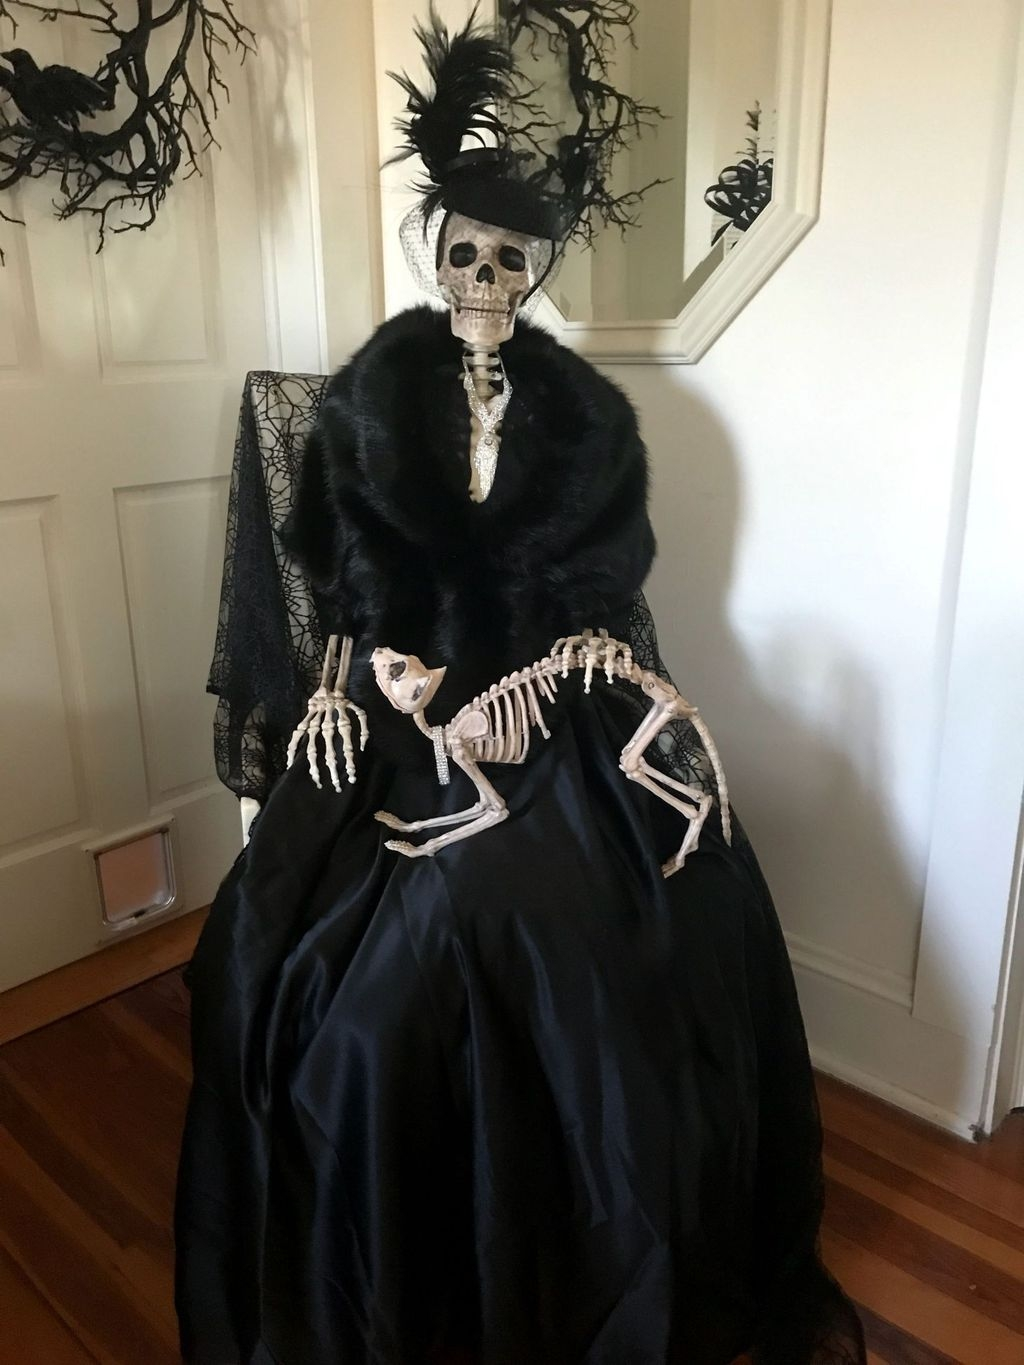 Casual Halloween Decorations Ideas That Are So Scary19